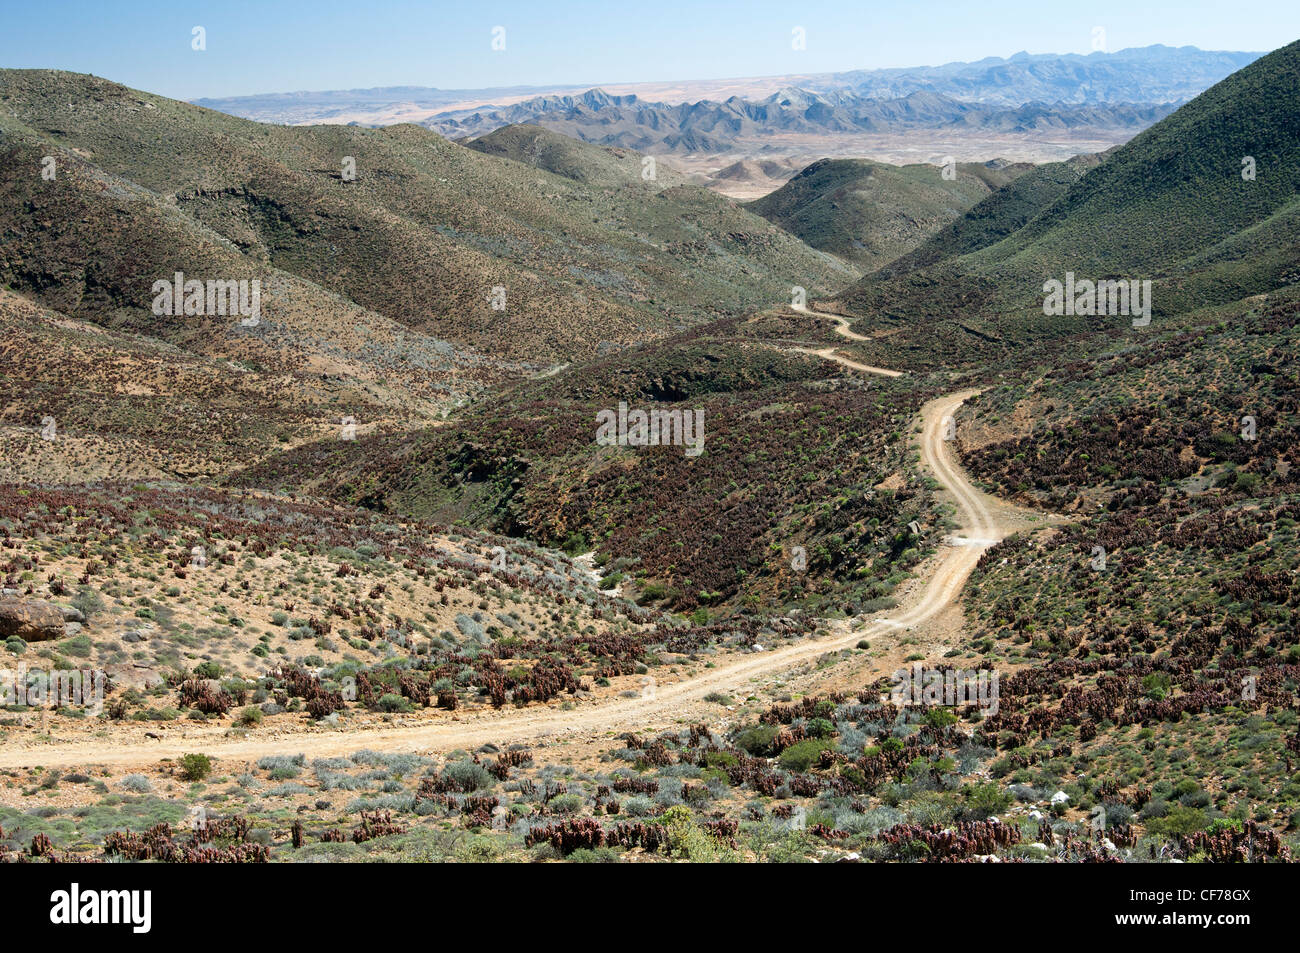 Arid valley in a Karoo landscape at the Helskloof Pass, Richtersveld National Park, South Africa - Stock Image